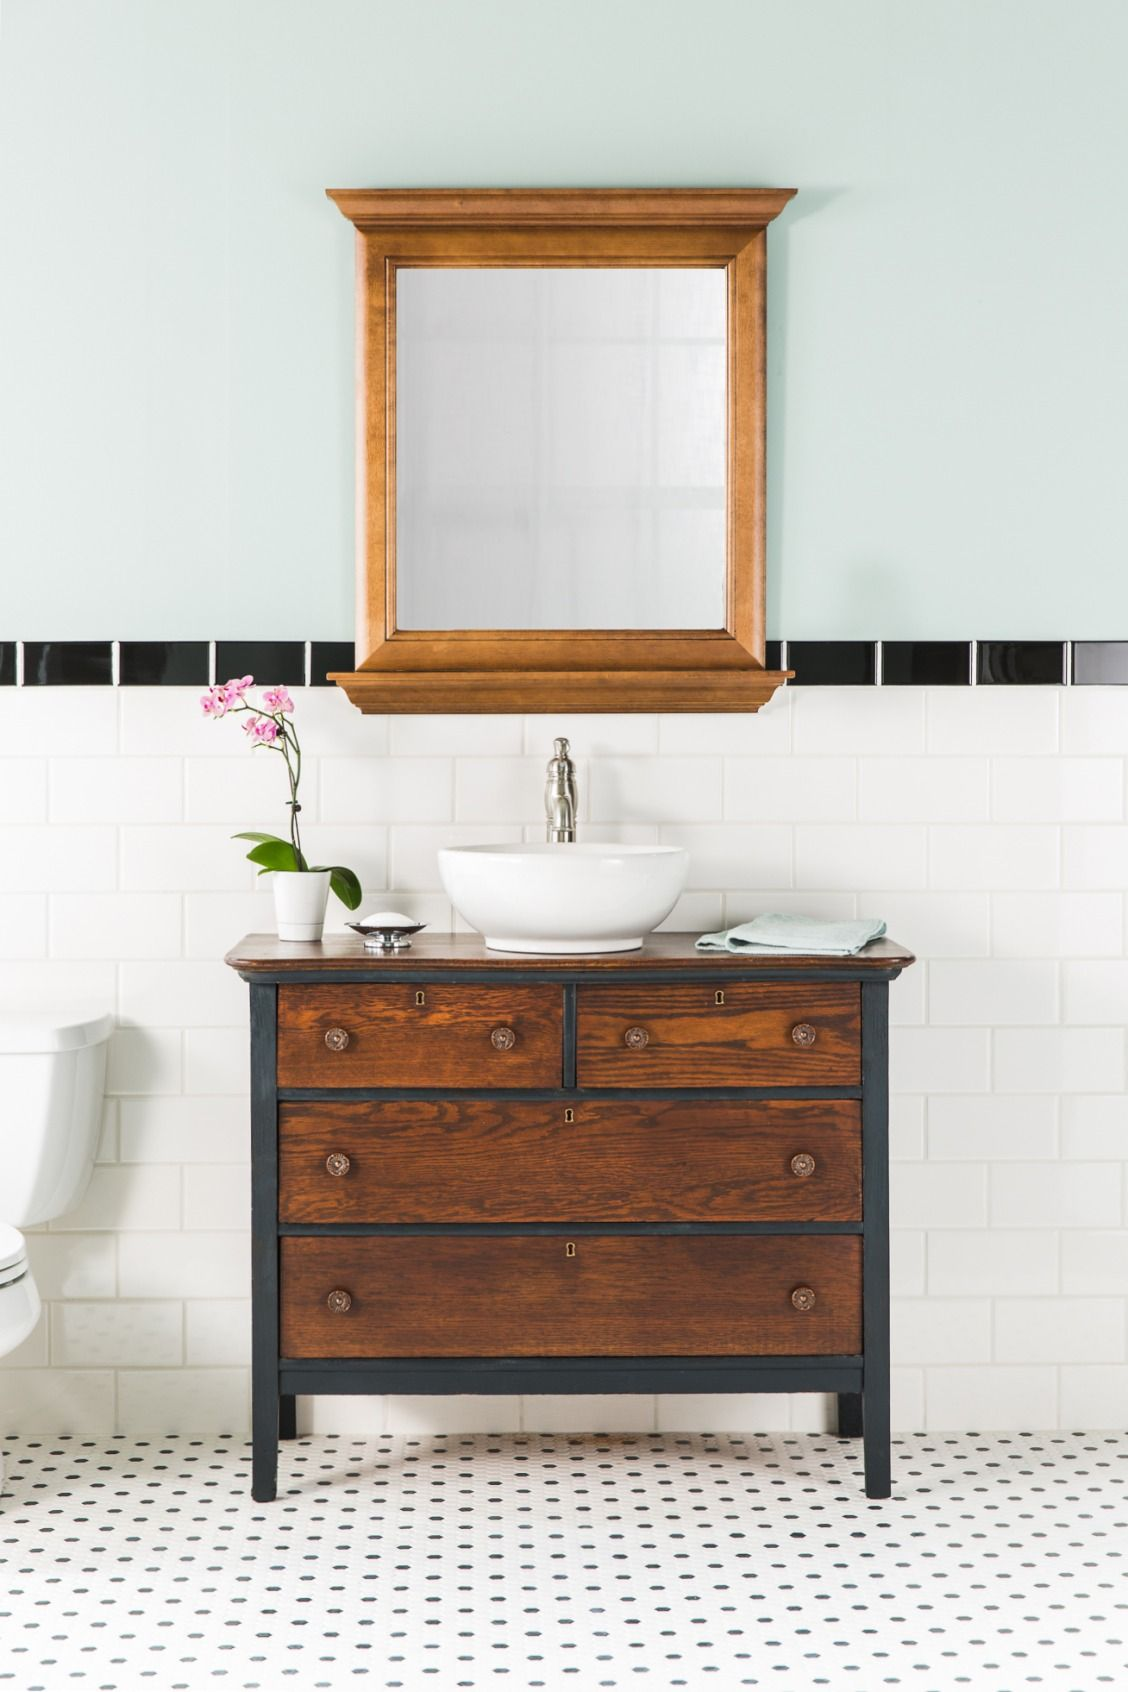 A rustic dresser transforms into a stylish bathroom vanity with the ...